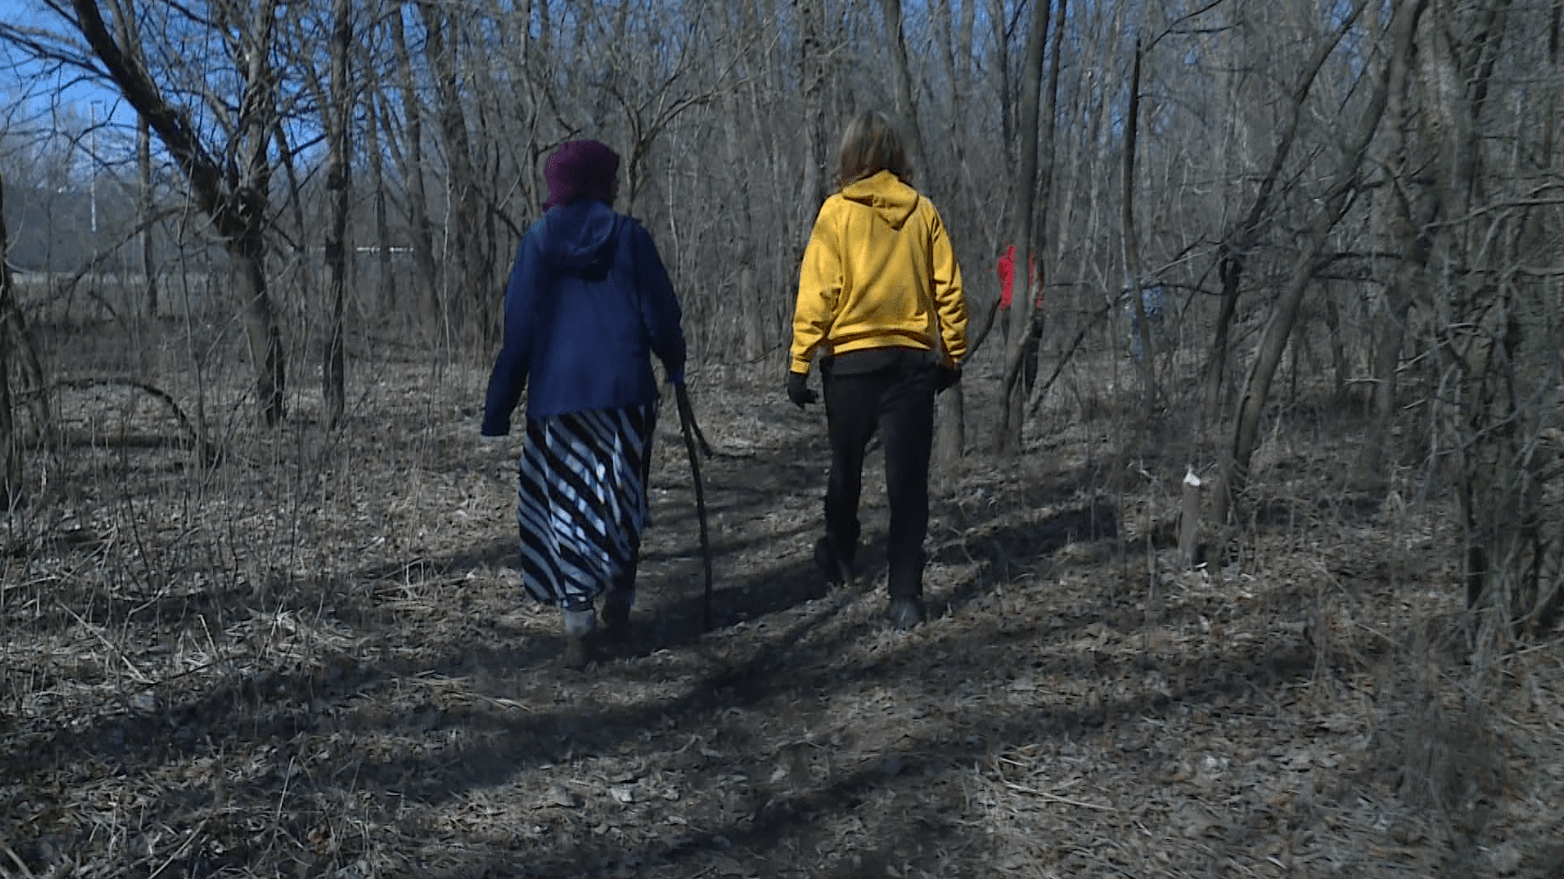 Volunteers Conduct Second Search for Missing Des Moines Teen 1